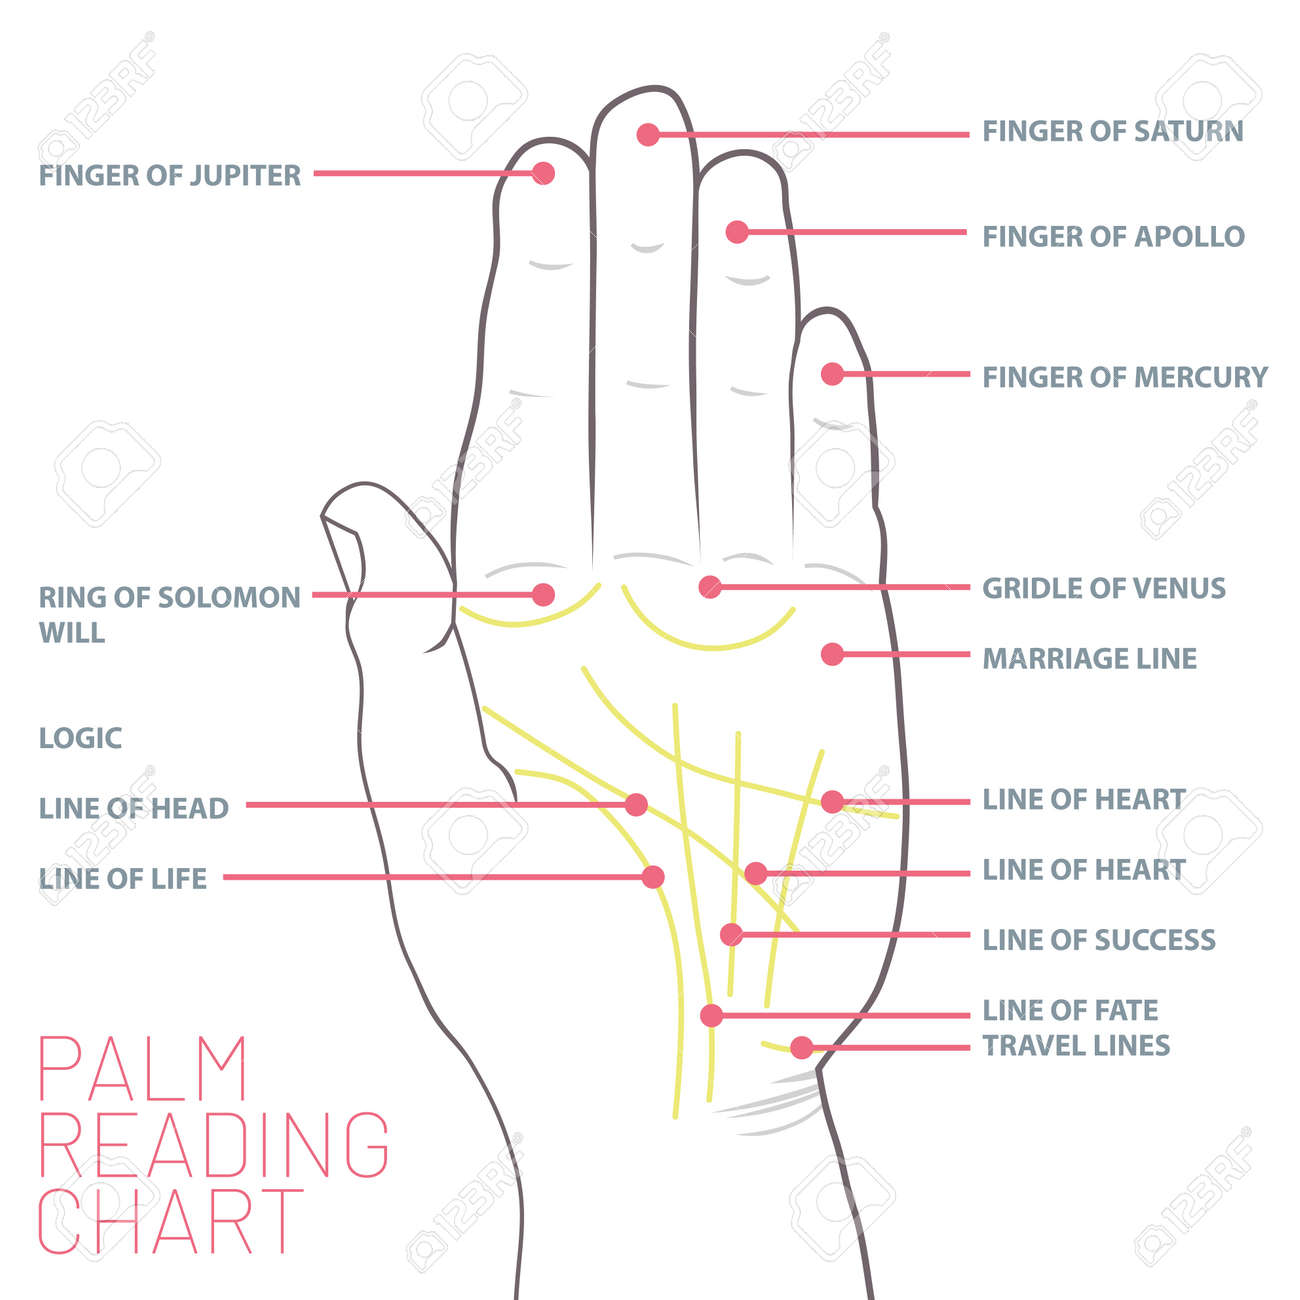 hight resolution of palm reading chart palmistry map of the palm s main lines stock vector 103245063